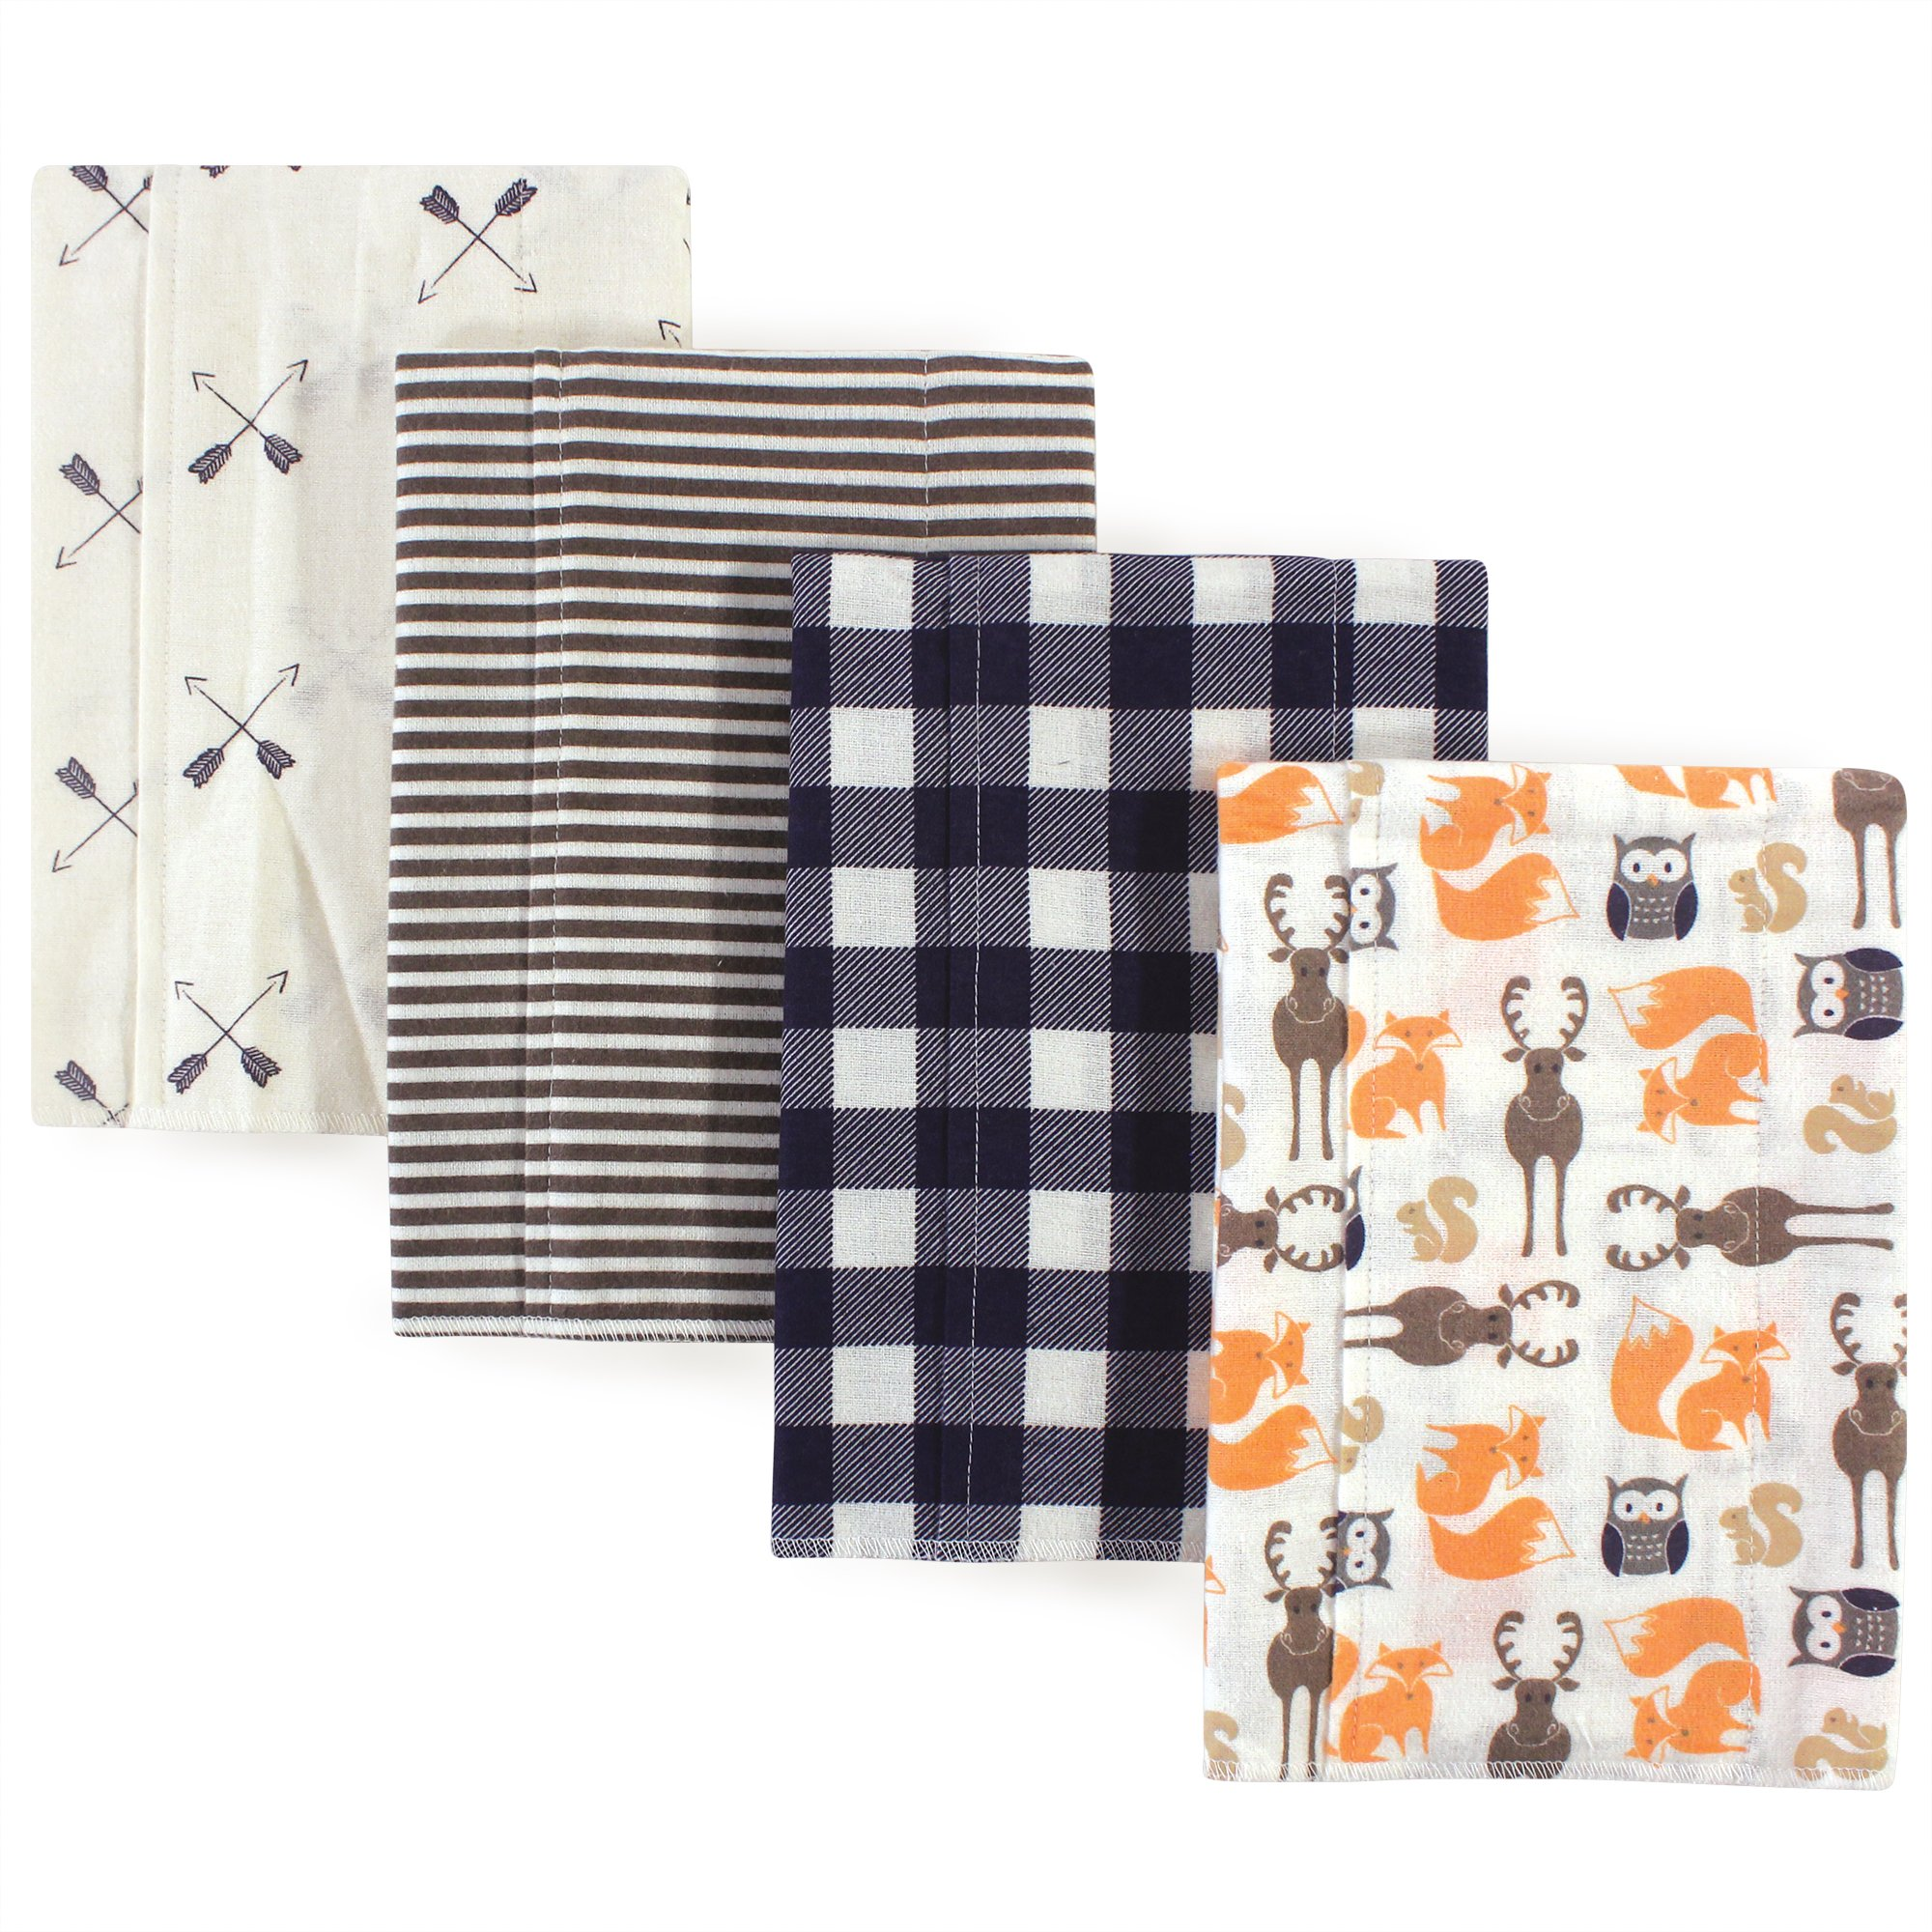 Hudson Baby Flannel Burp Cloth, 4 Pack, Forest, One Size